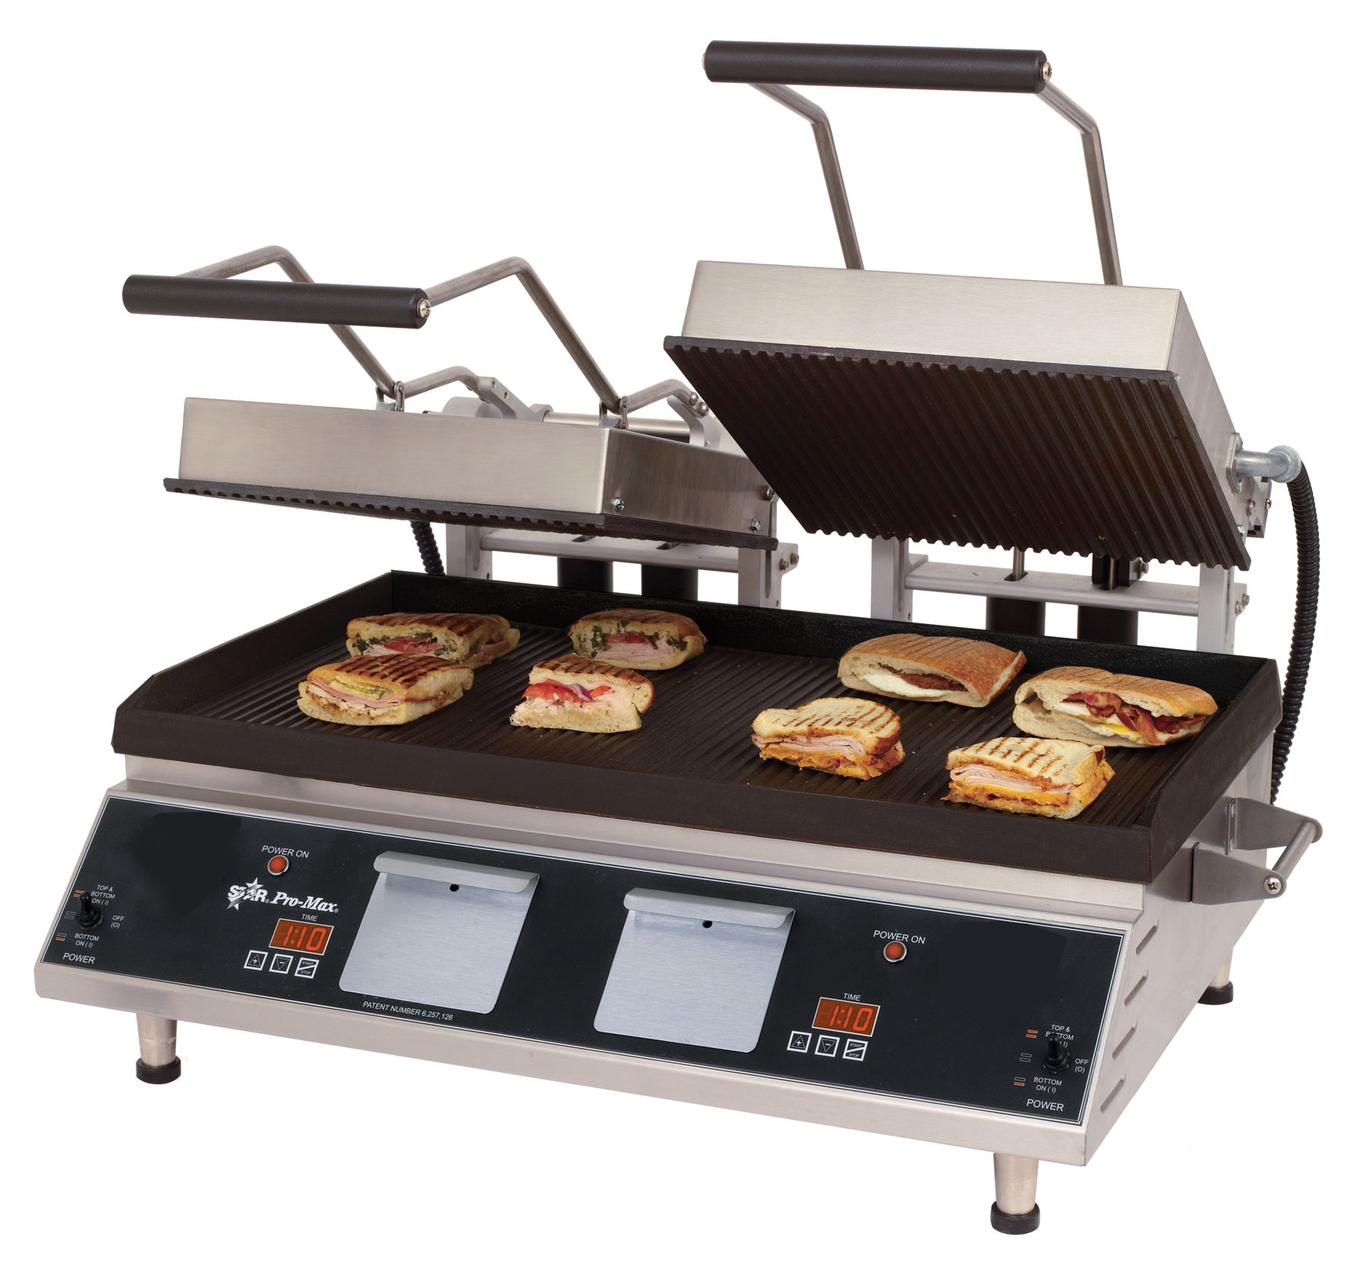 star cr28ie pro max two sided grill 14 x 28 hd smooth iron grill. Black Bedroom Furniture Sets. Home Design Ideas